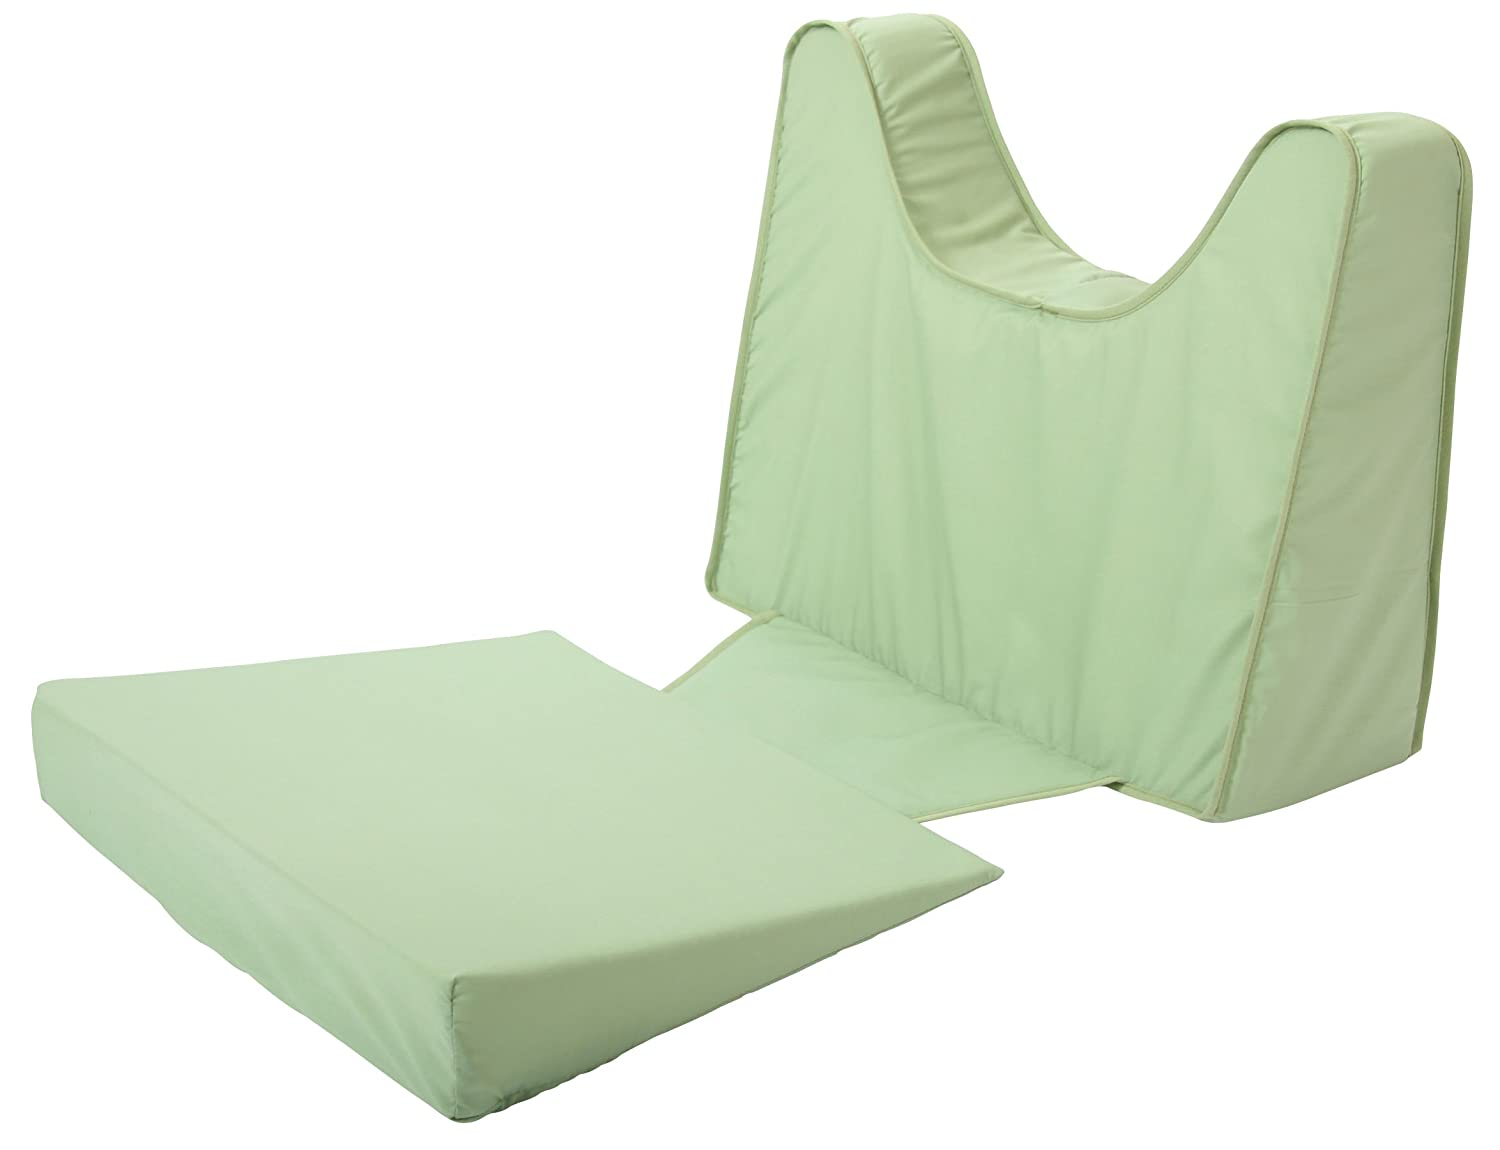 大流行中! Leachco B0010ZB3L4 Back N Shape Adjustable Shape Maternity Pillow Set, Sage Back マタニティ 看護 クッション B0010ZB3L4, 木曽福島町:2c93a054 --- a0267596.xsph.ru